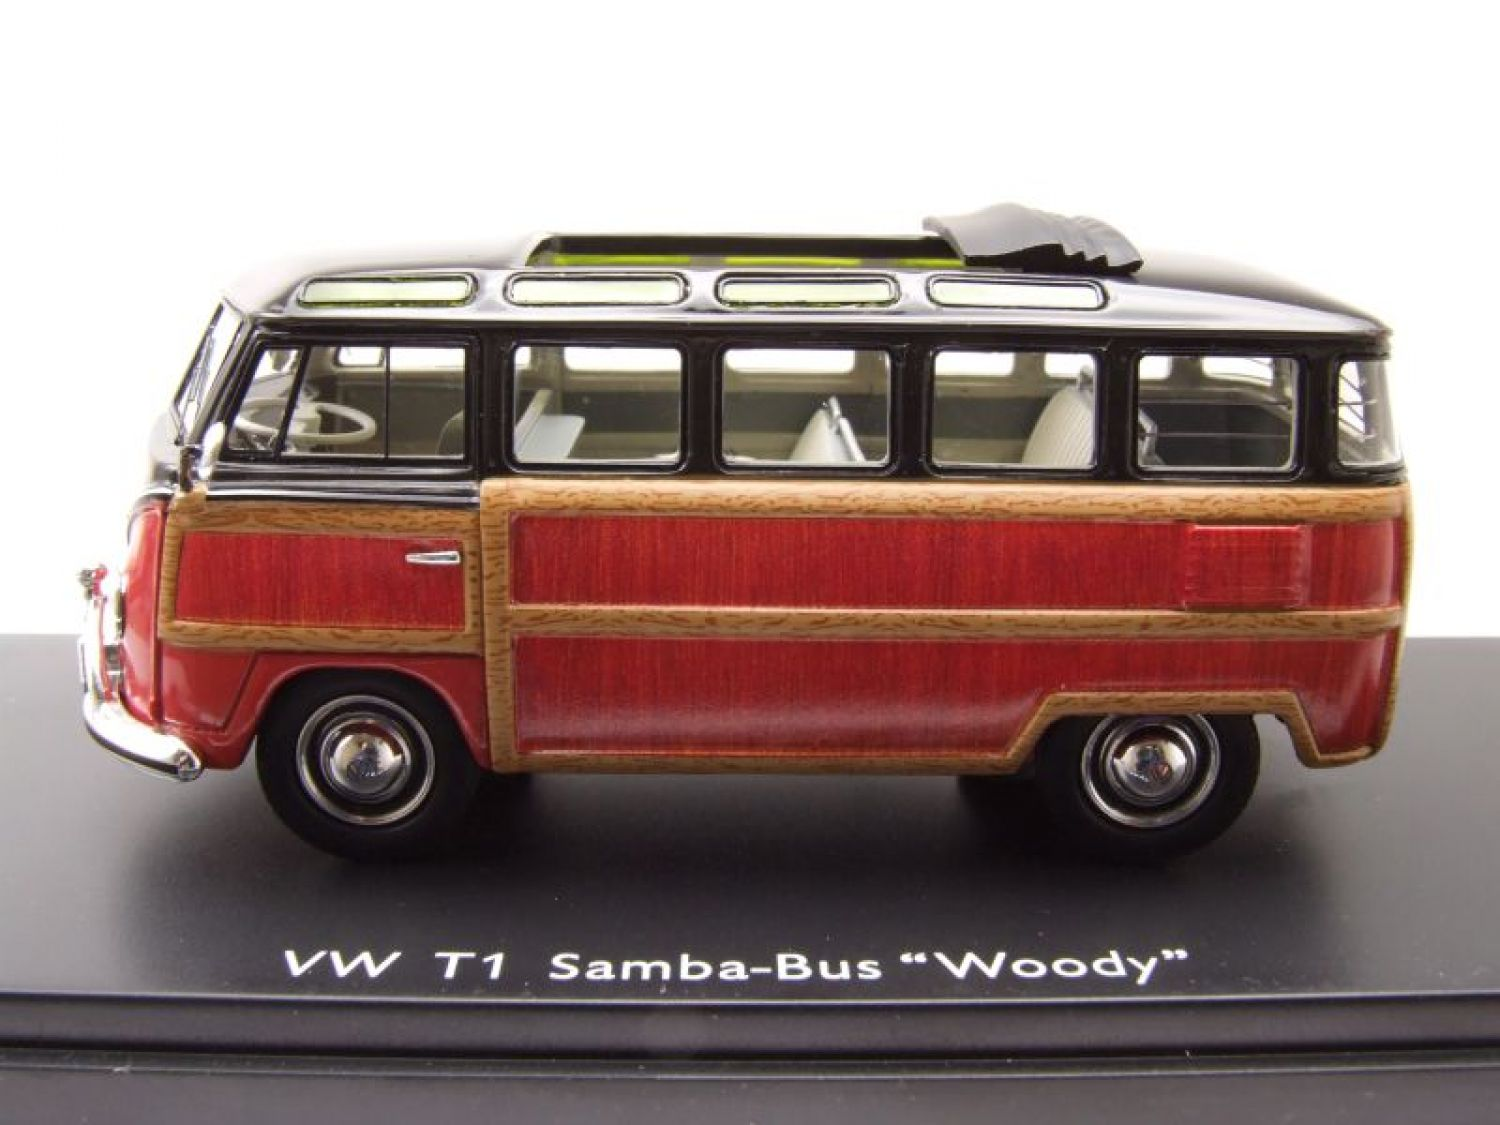 vw t1 samba bus woody schwarz braun holzoptik modellauto. Black Bedroom Furniture Sets. Home Design Ideas